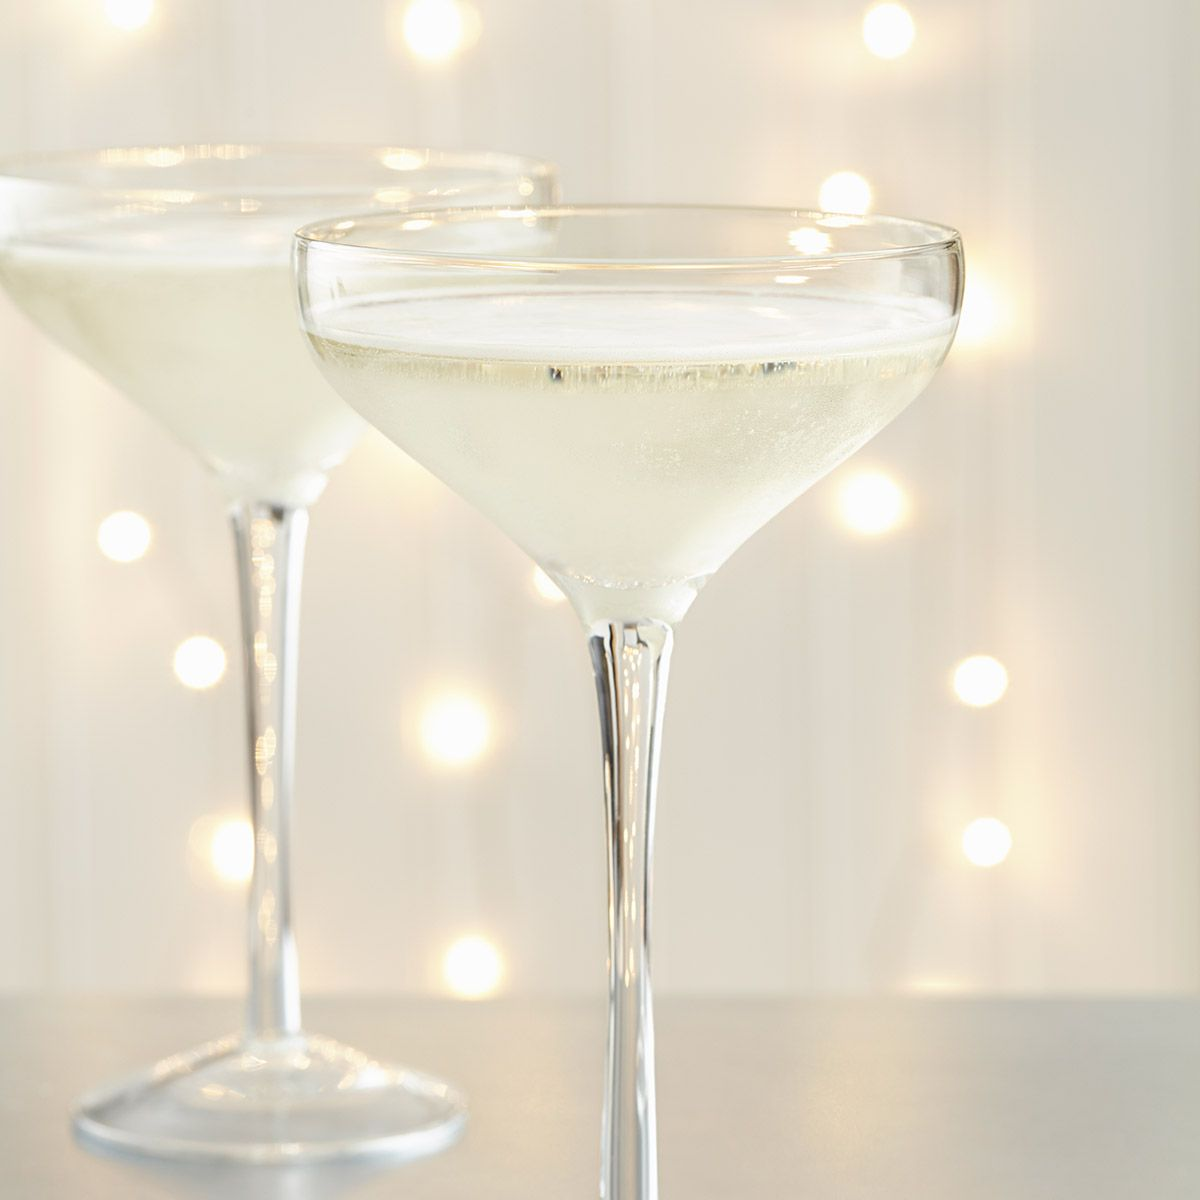 Best Prosecco for Christmas 2019